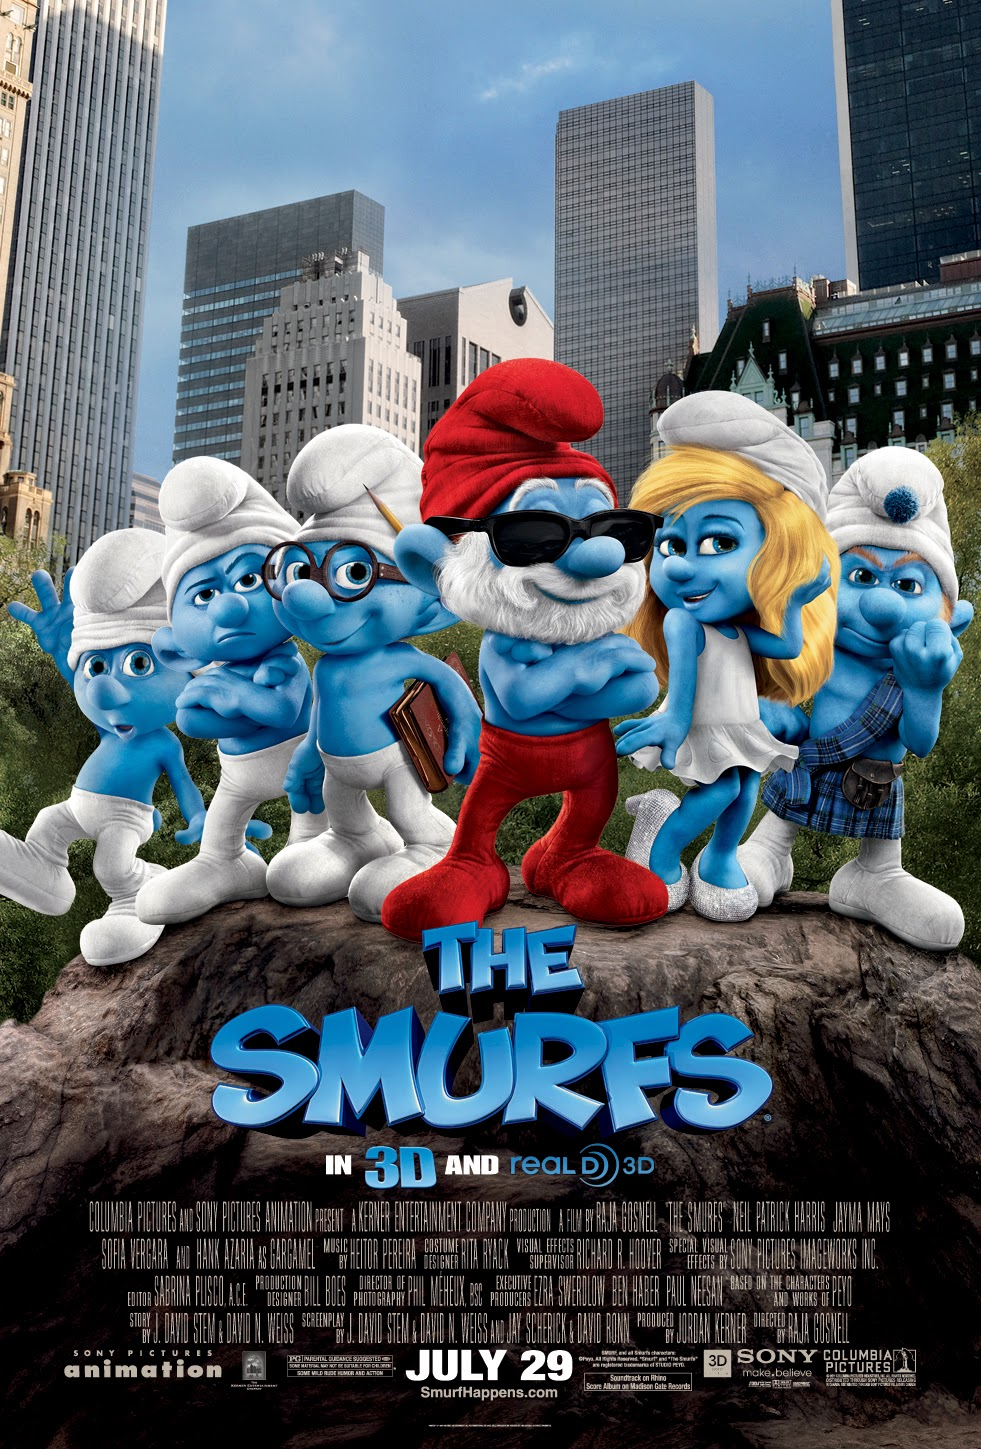 The Smurfs 2 - Download and watch free online hd movies 2016